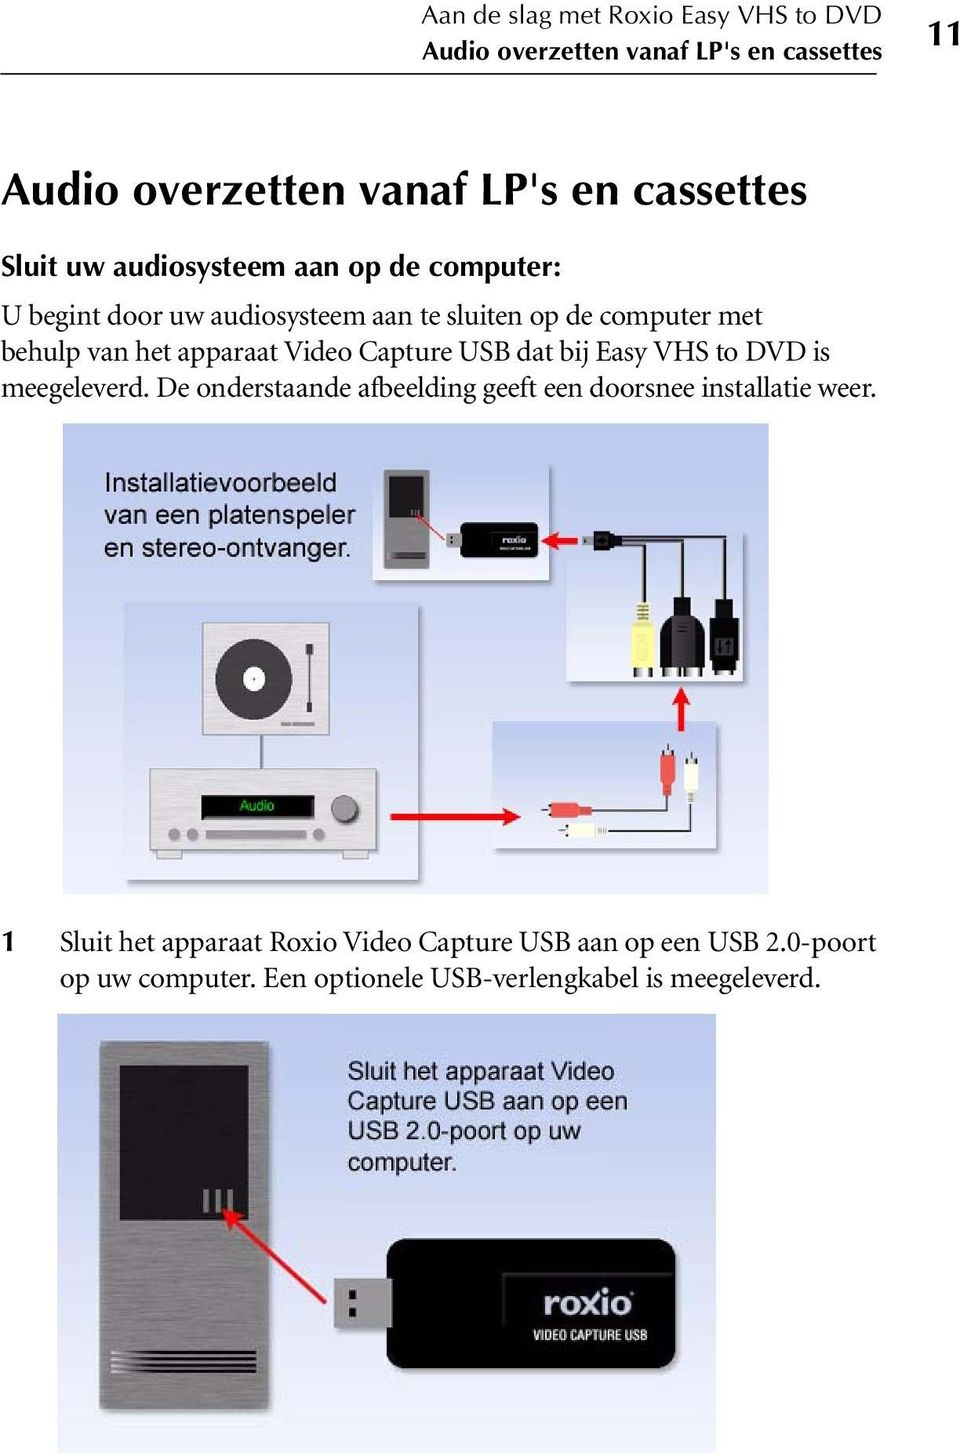 apparaat Video Capture USB dat bij Easy VHS to DVD is meegeleverd.